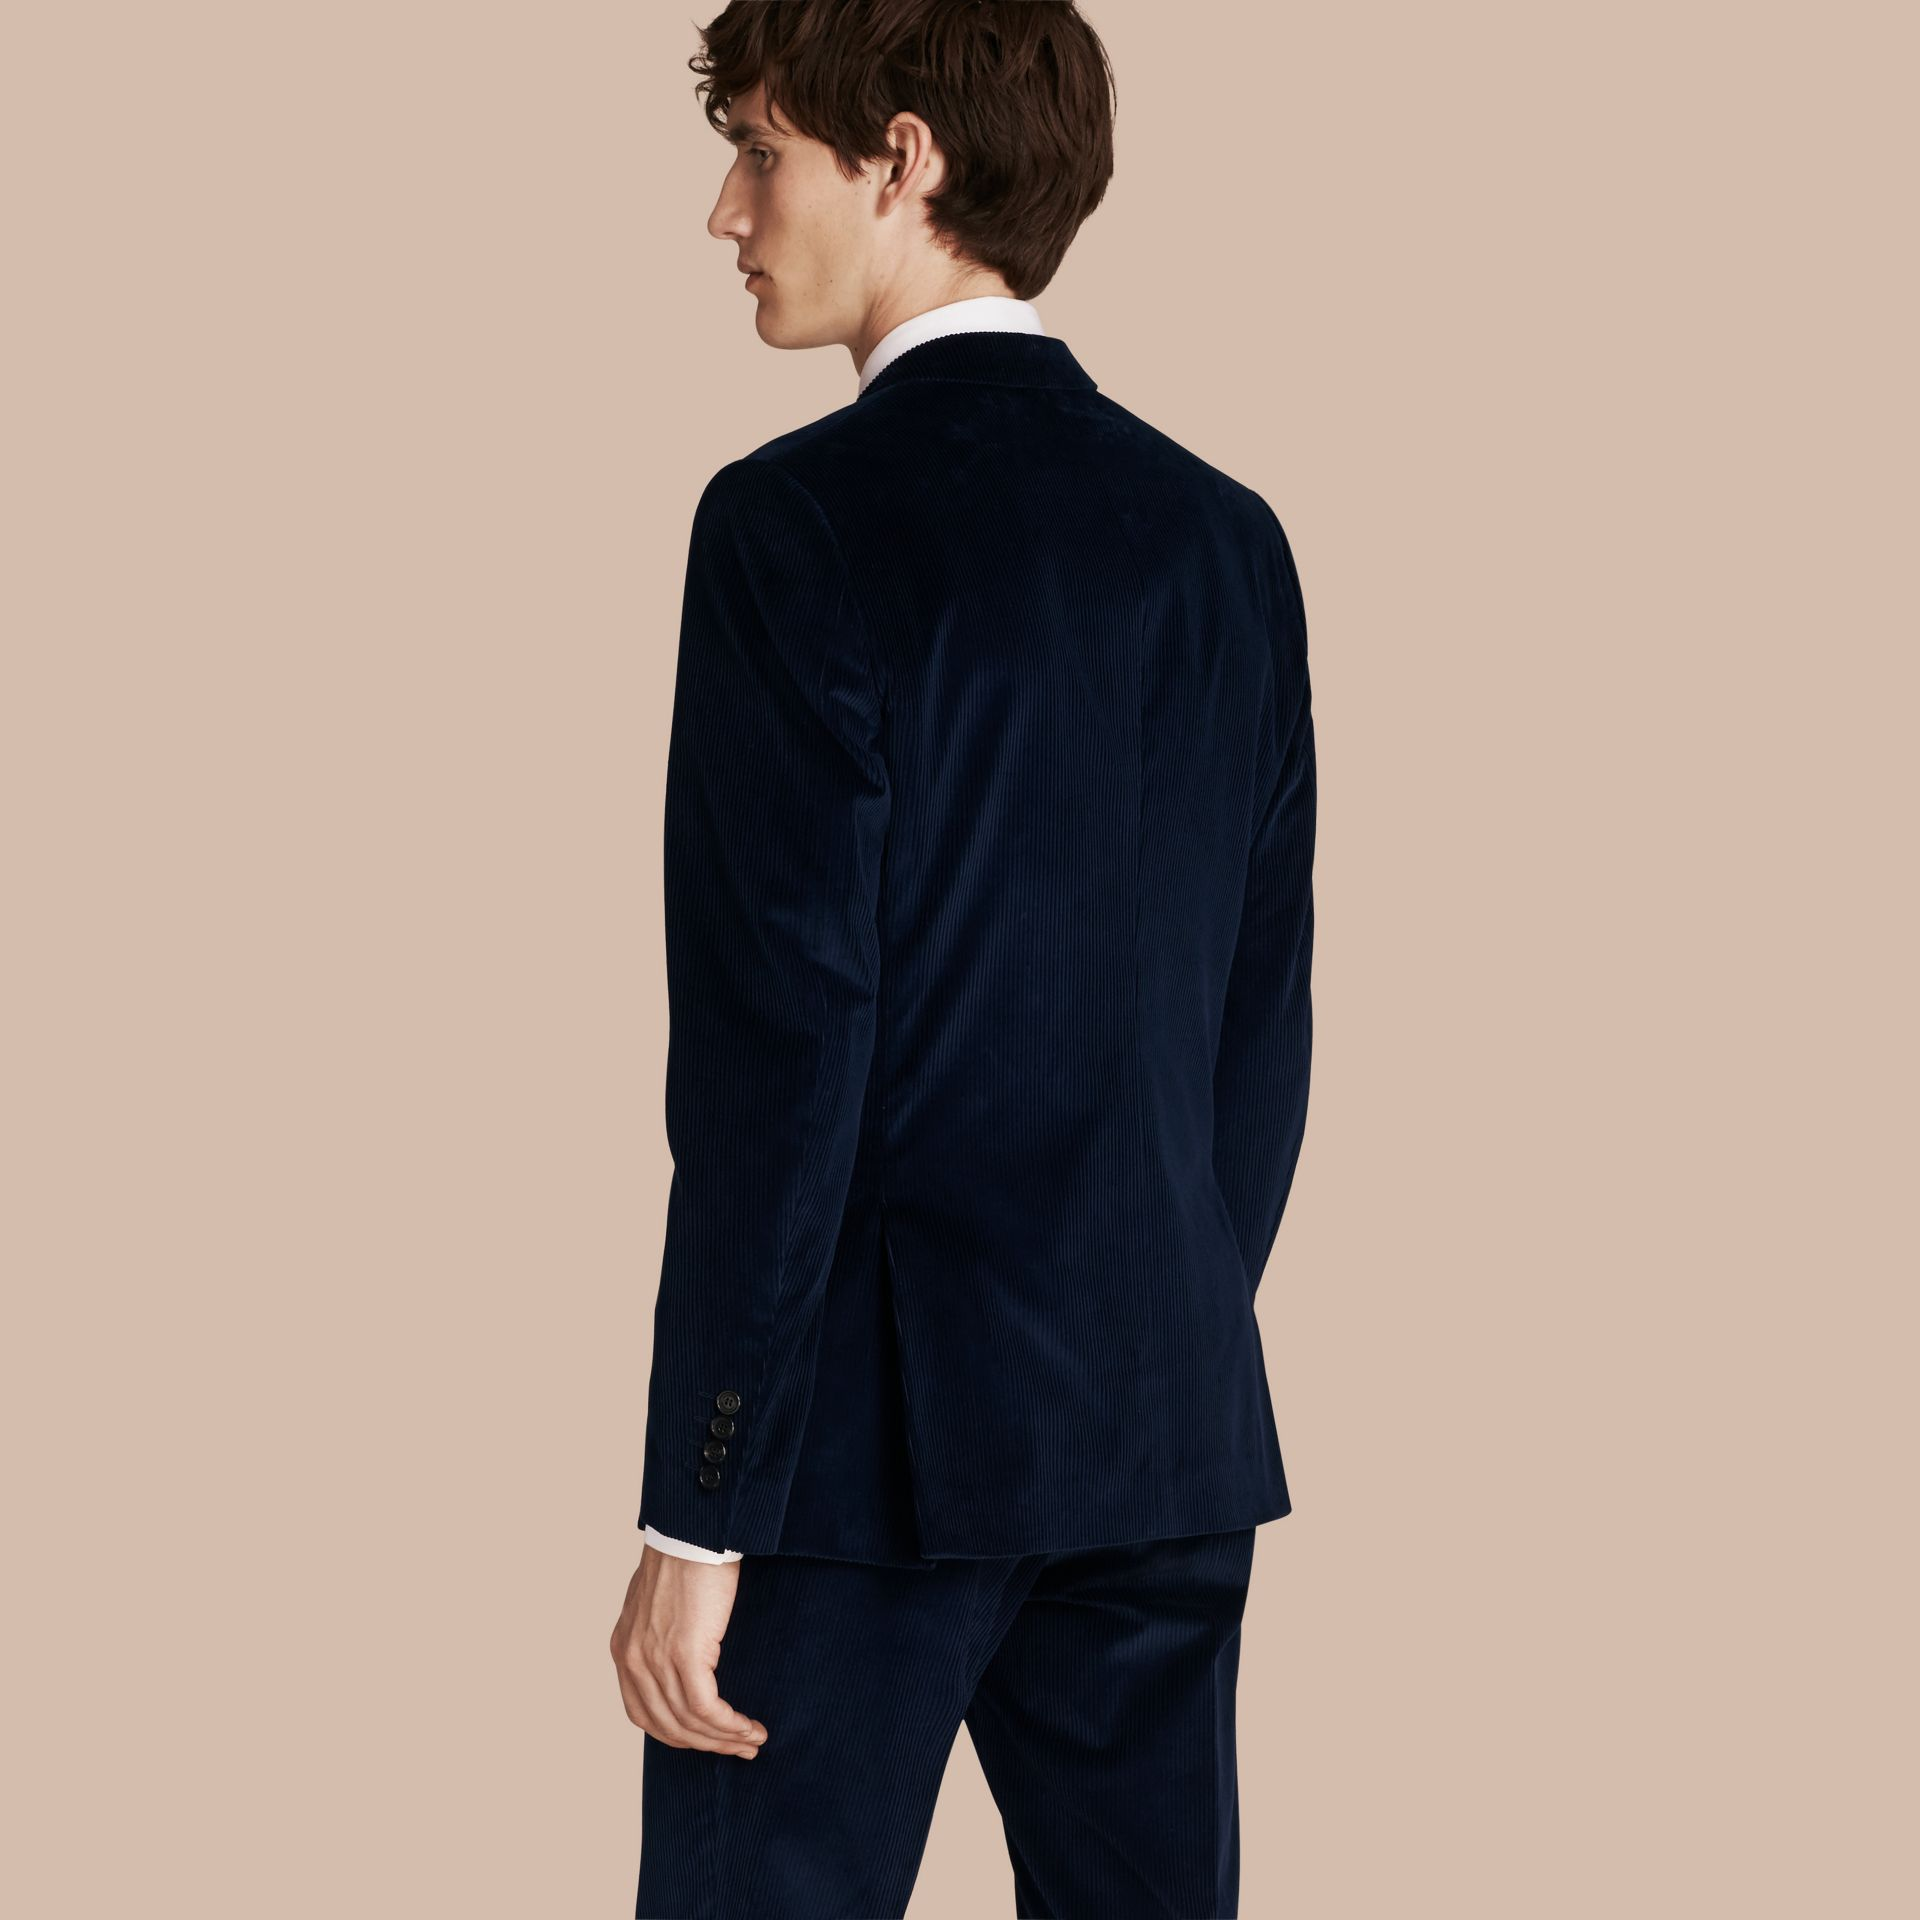 Navy Slim Fit Cotton Corduroy Jacket Navy - gallery image 3